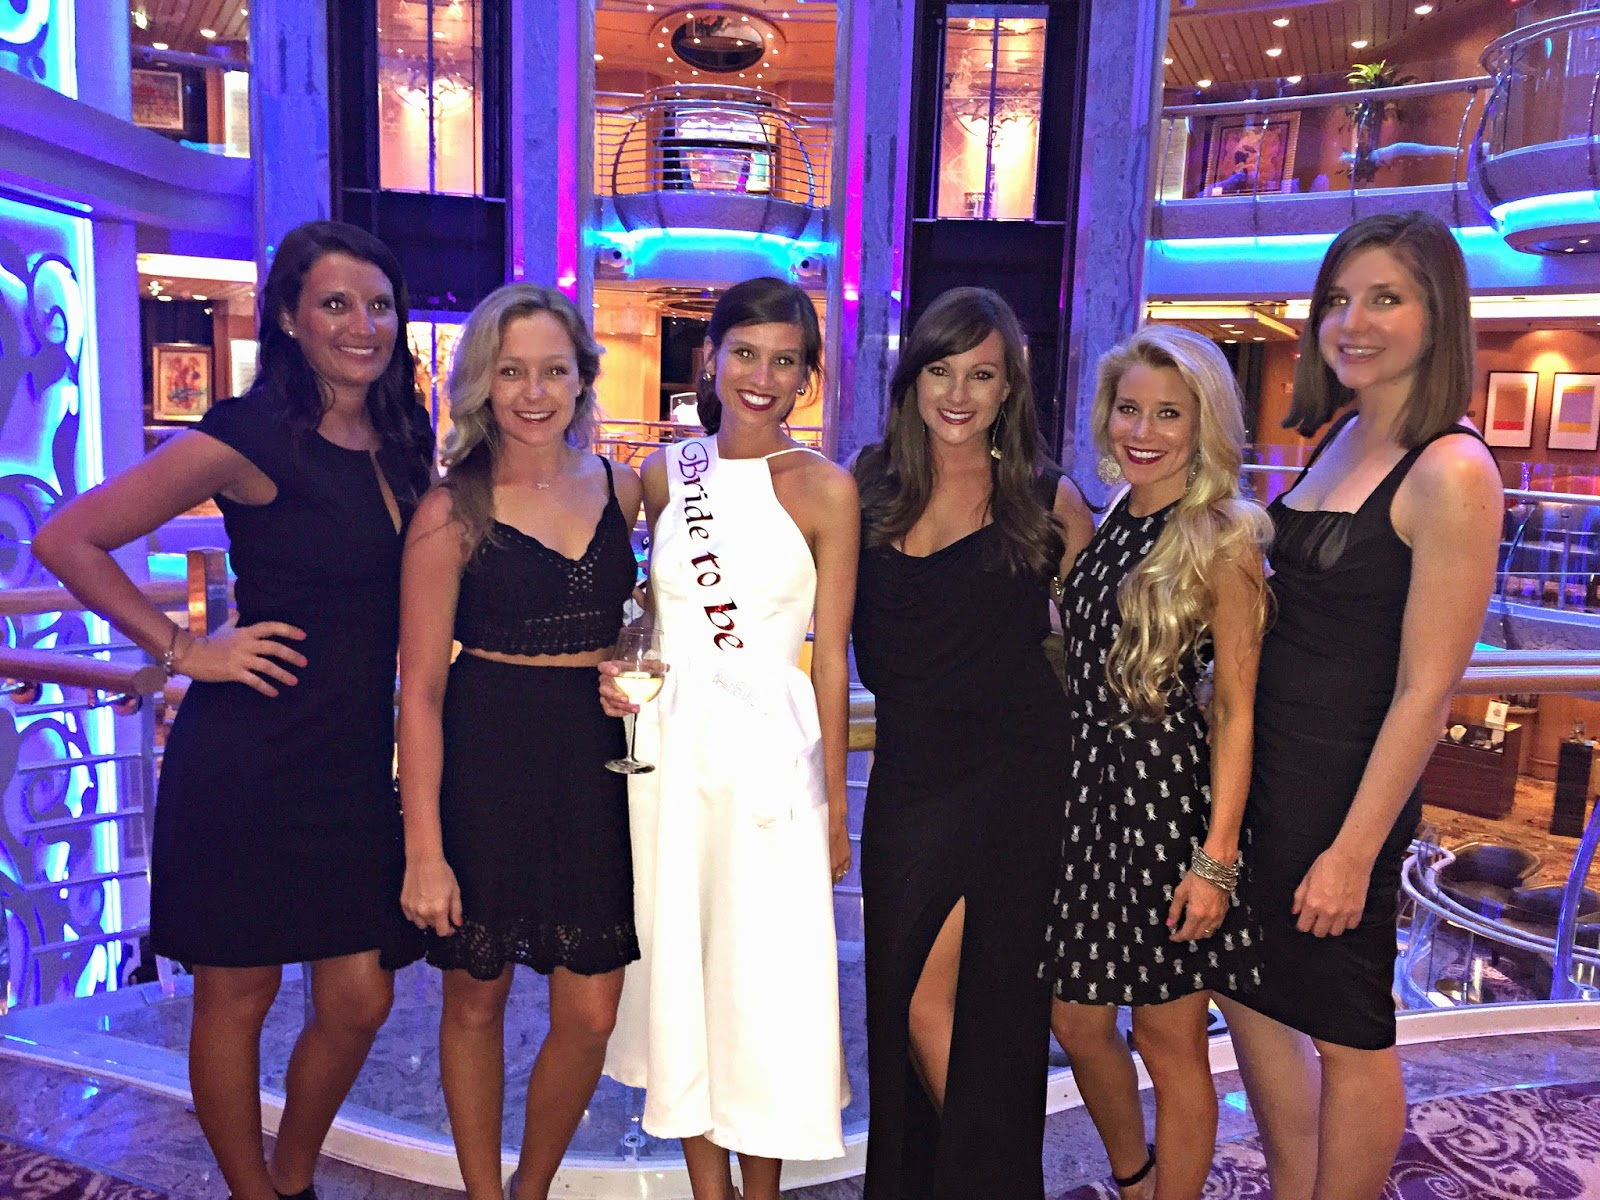 Bachelorette Cruise Re-cap! - Welcome To Olivia Rink